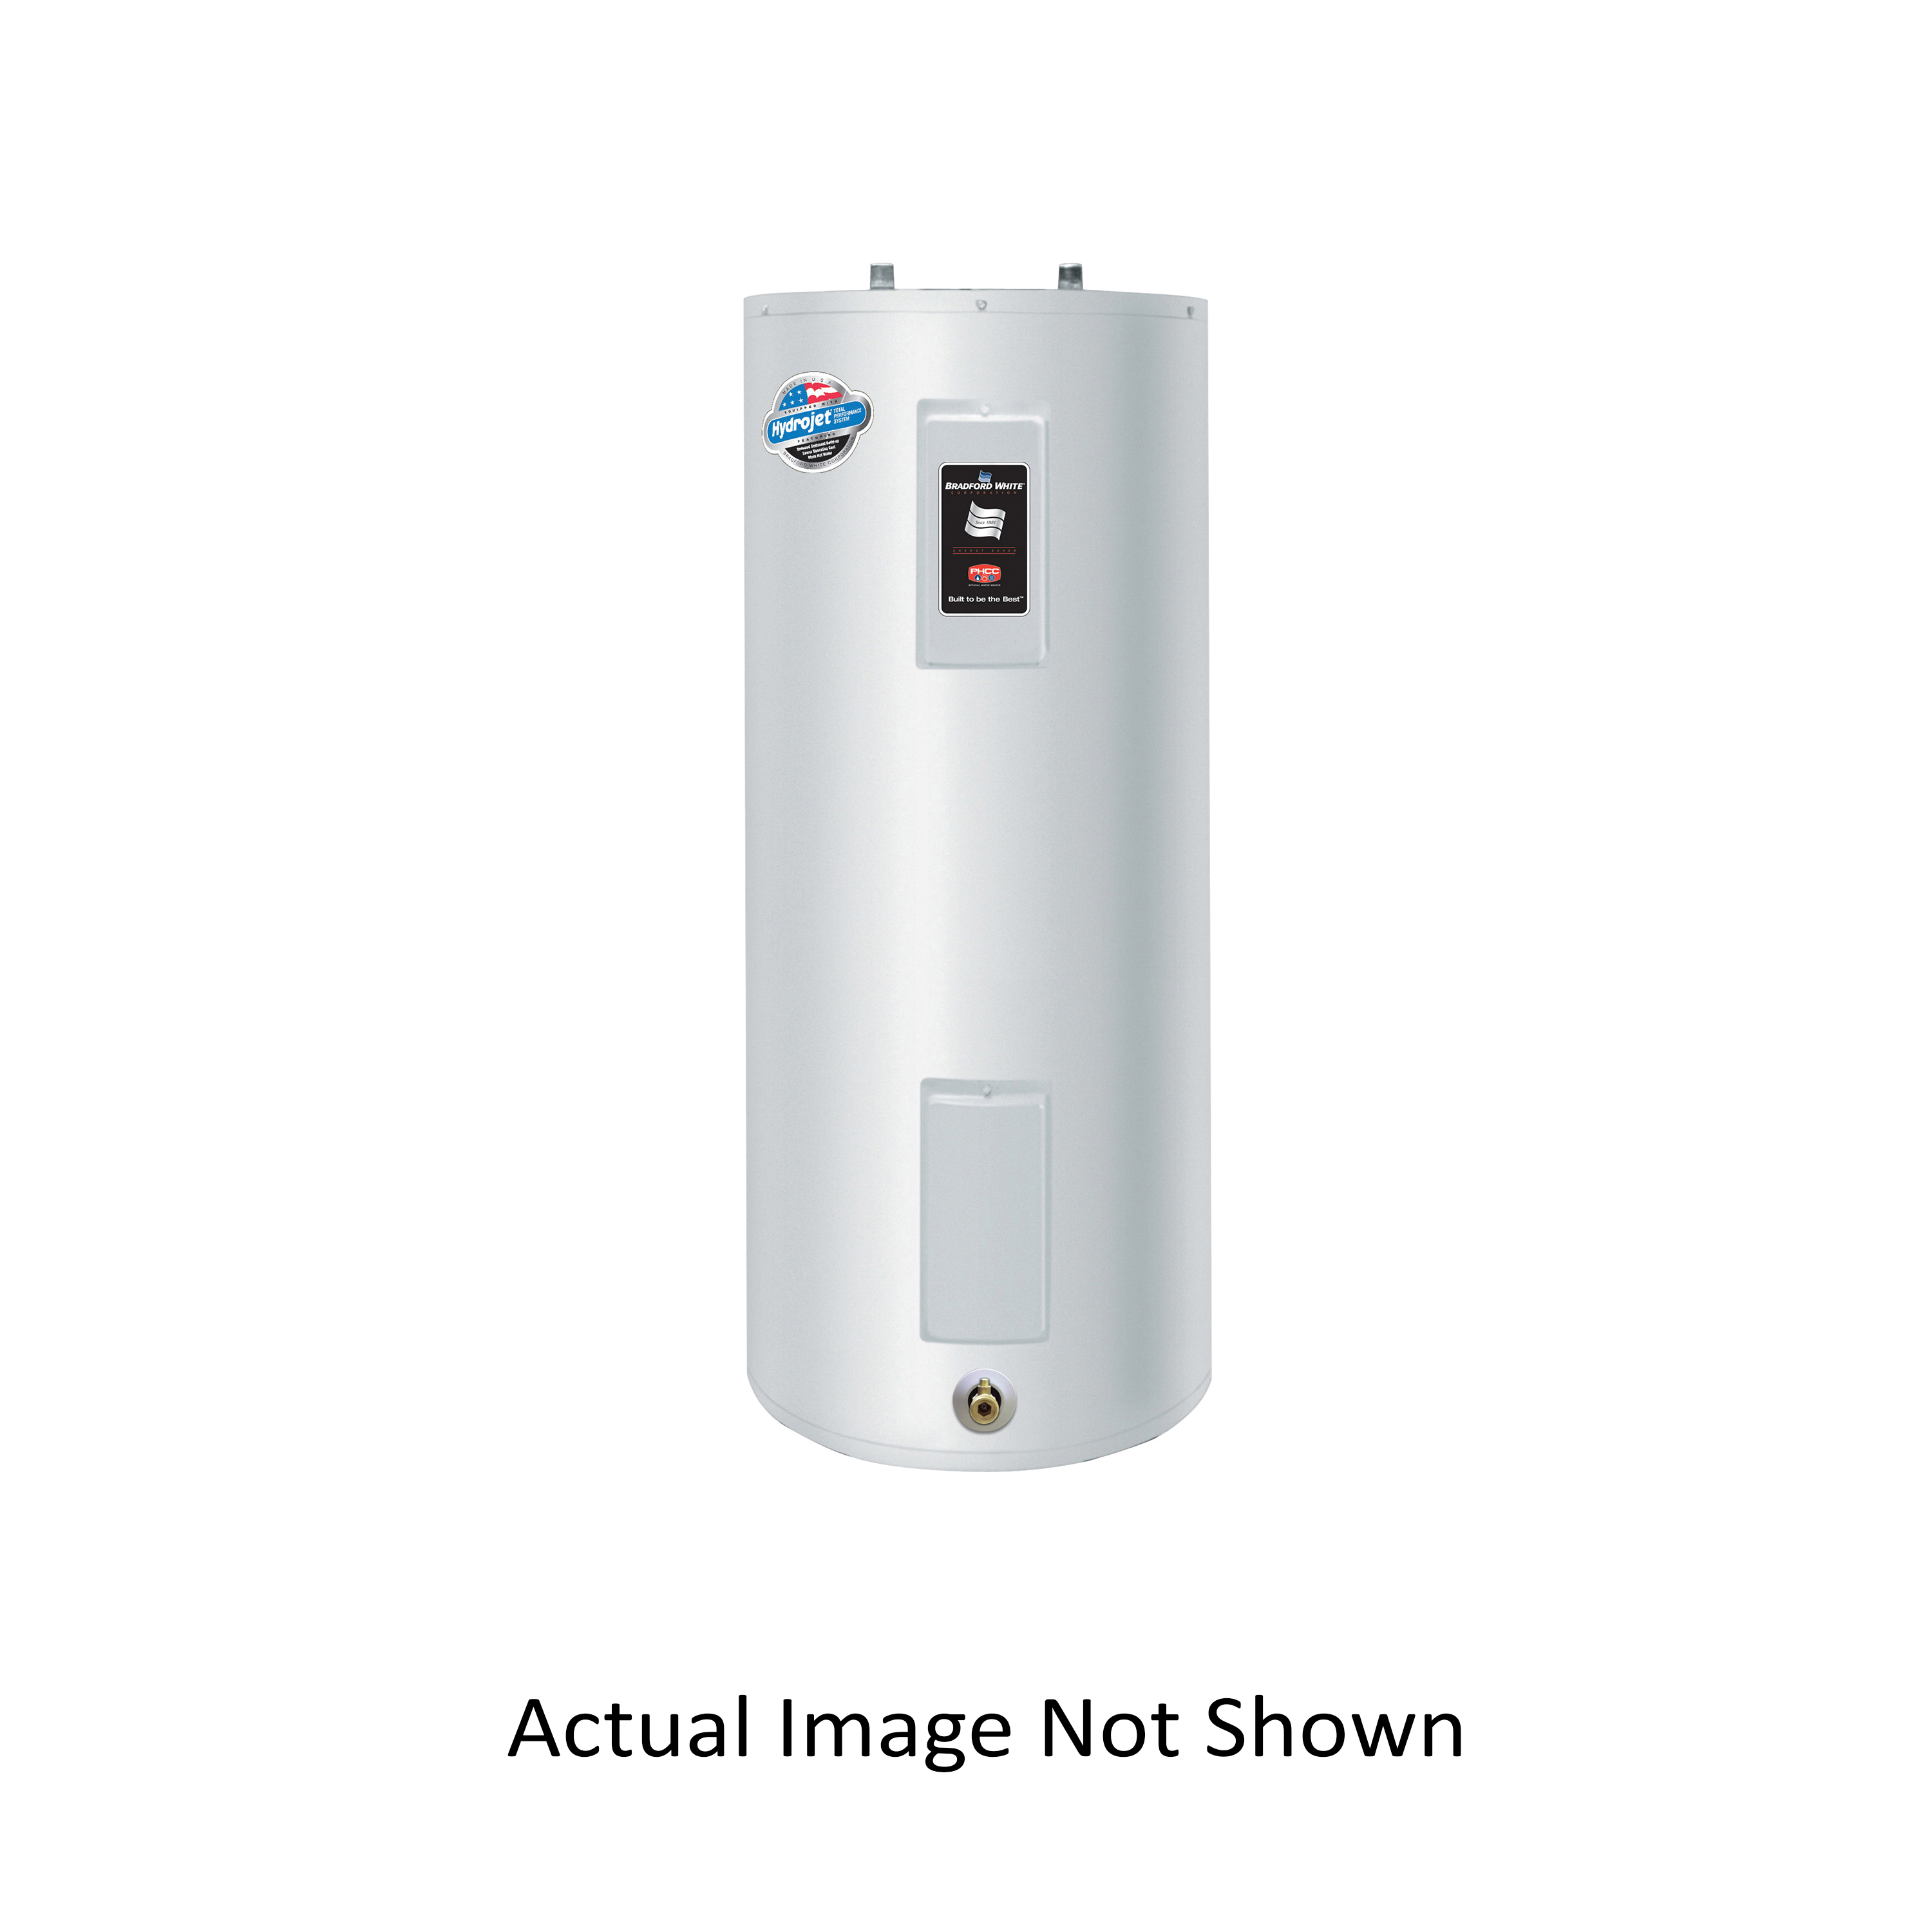 Bradford White® RE240S6-1NCWW Upright Electric Water Heater, 40 gal Tank, 208/240 VAC, 3500 W at 208 VAC/4500 W at 240 VAC, 1 ph, Tall or Short: Short, Domestic